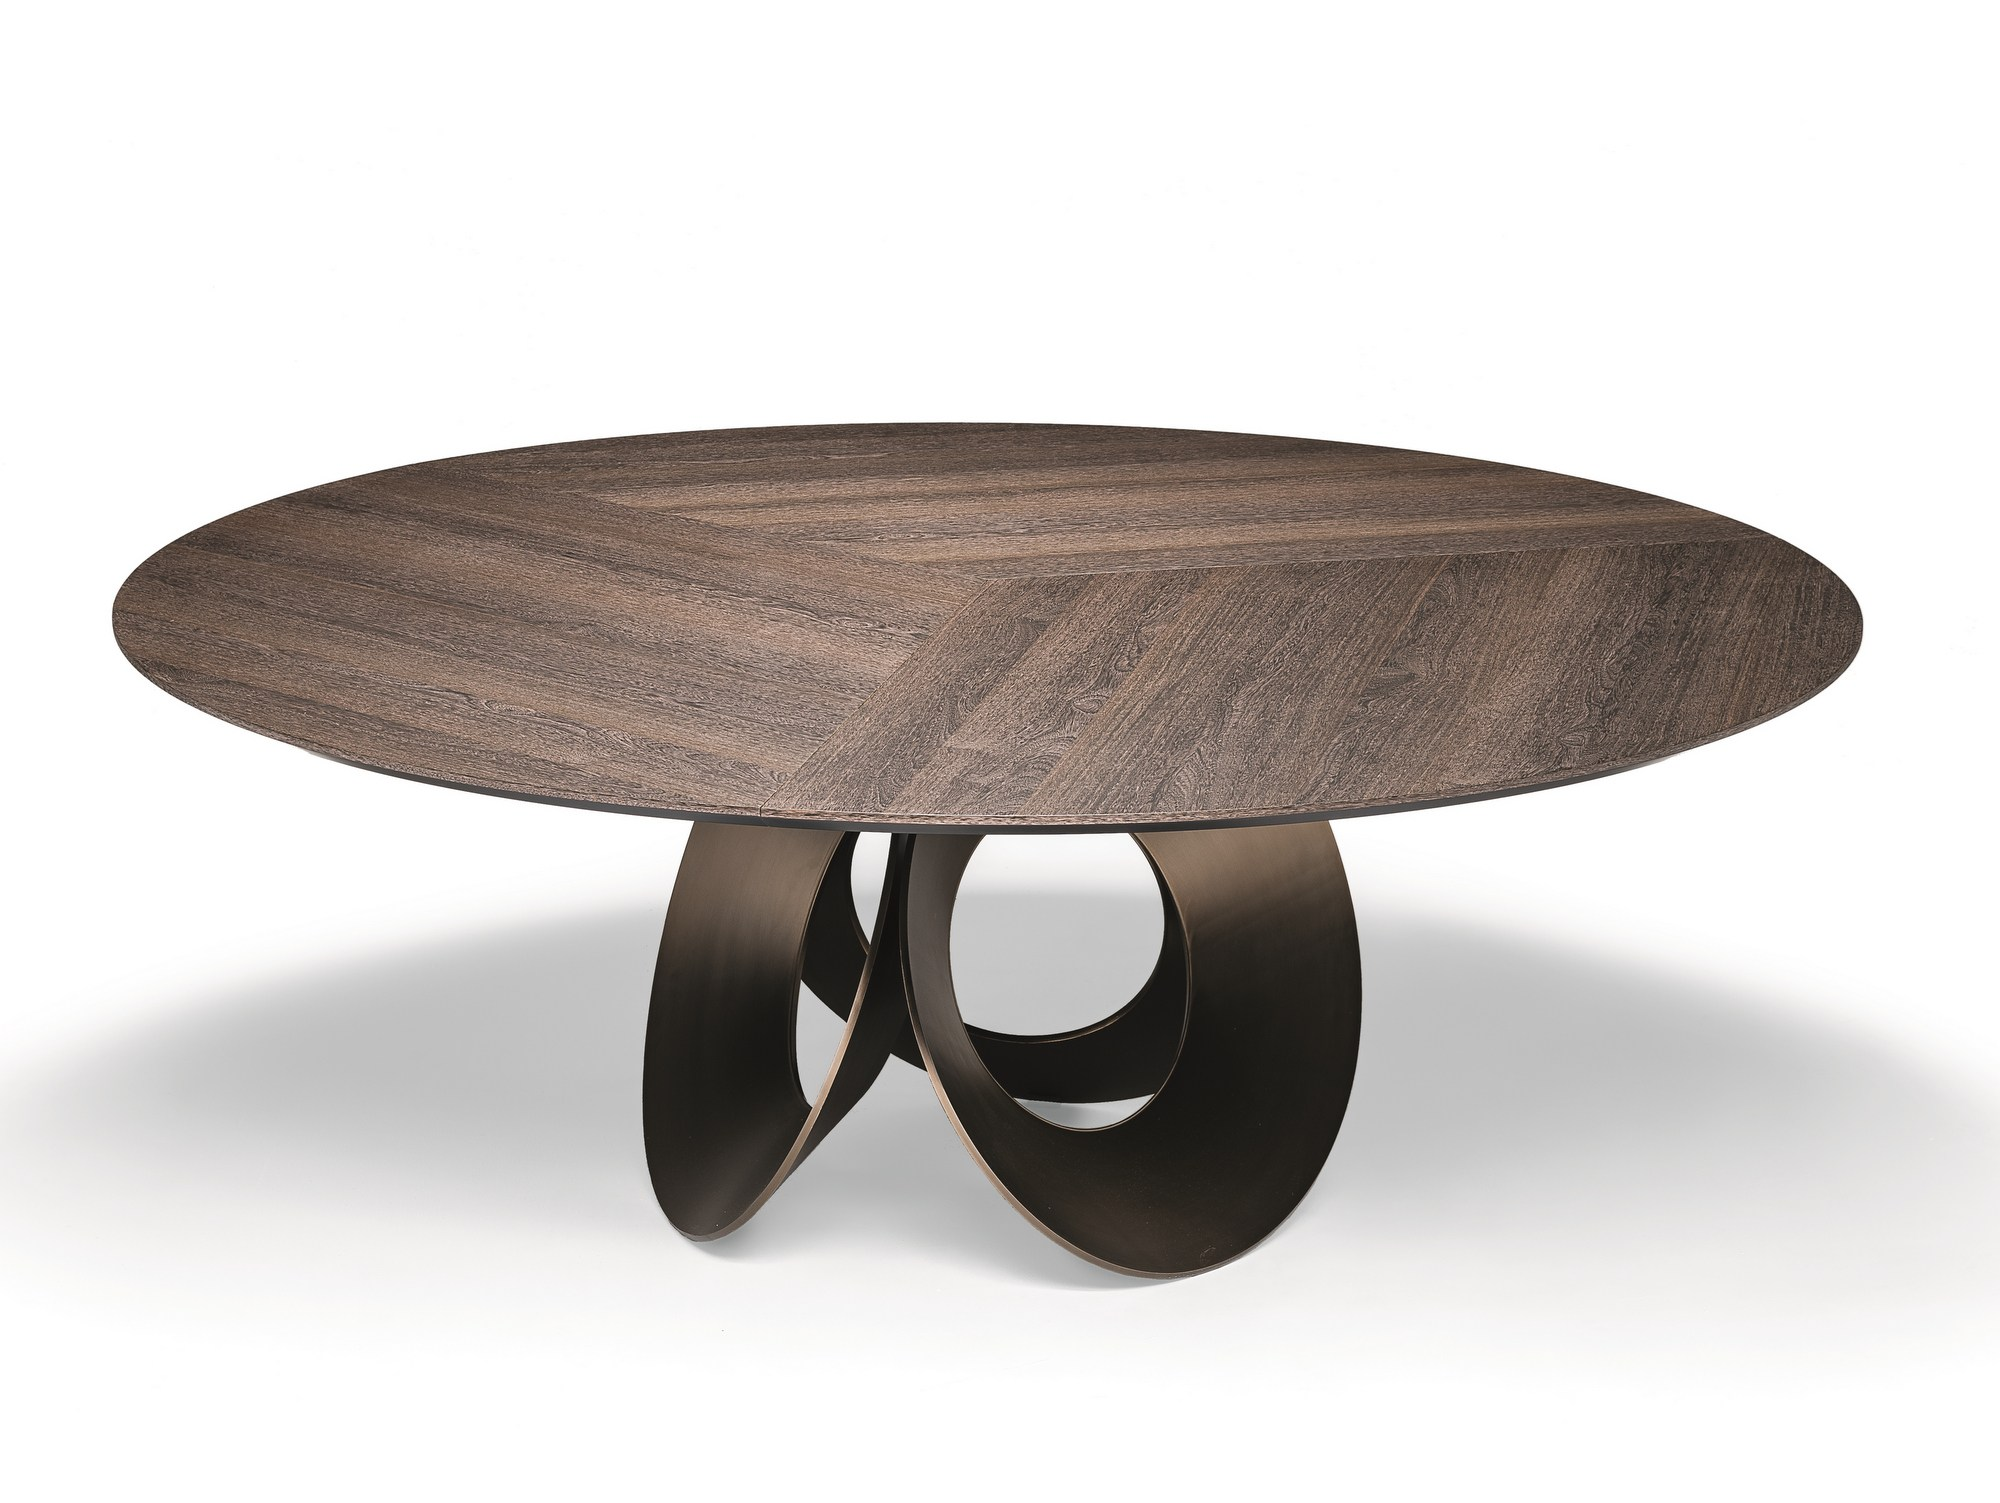 Round wood fibre living room table oracle by arketipo for Table design oracle